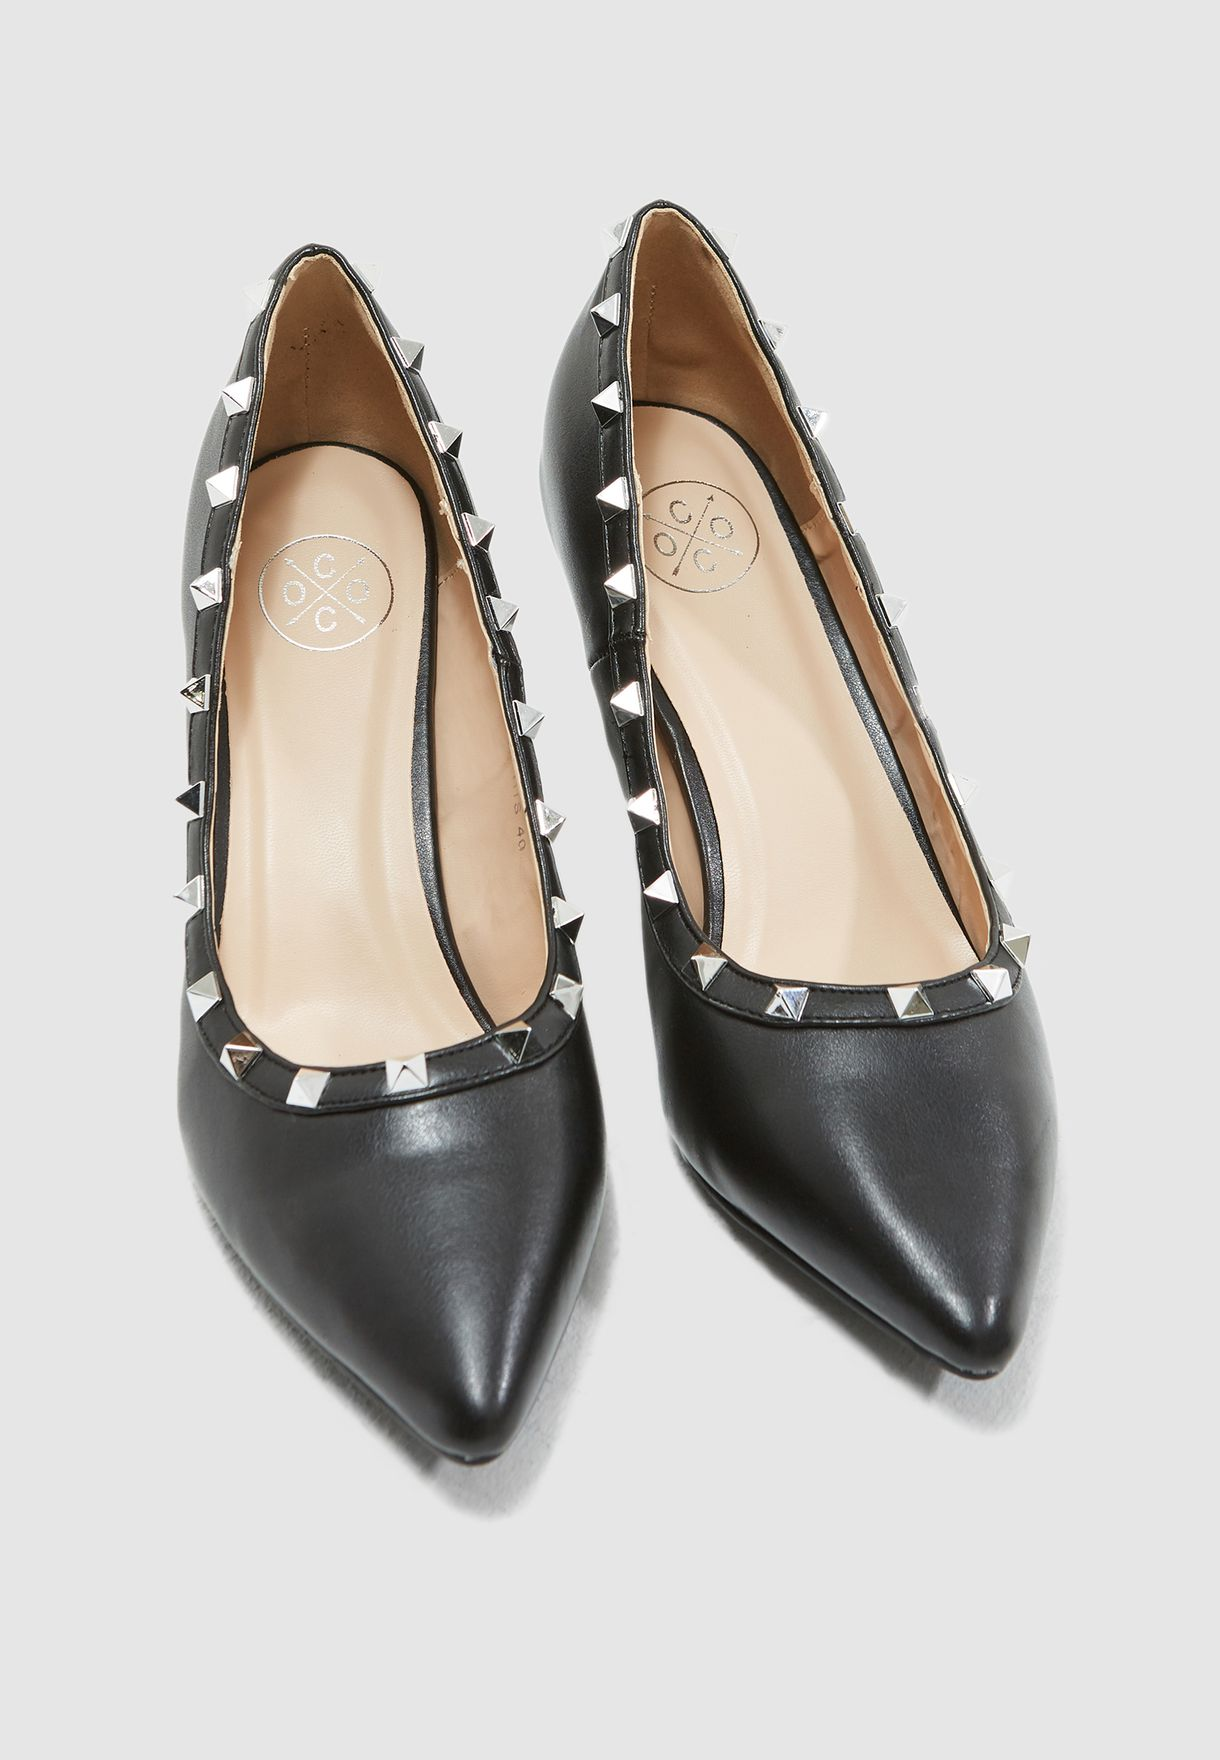 Sachi Studded Pumps